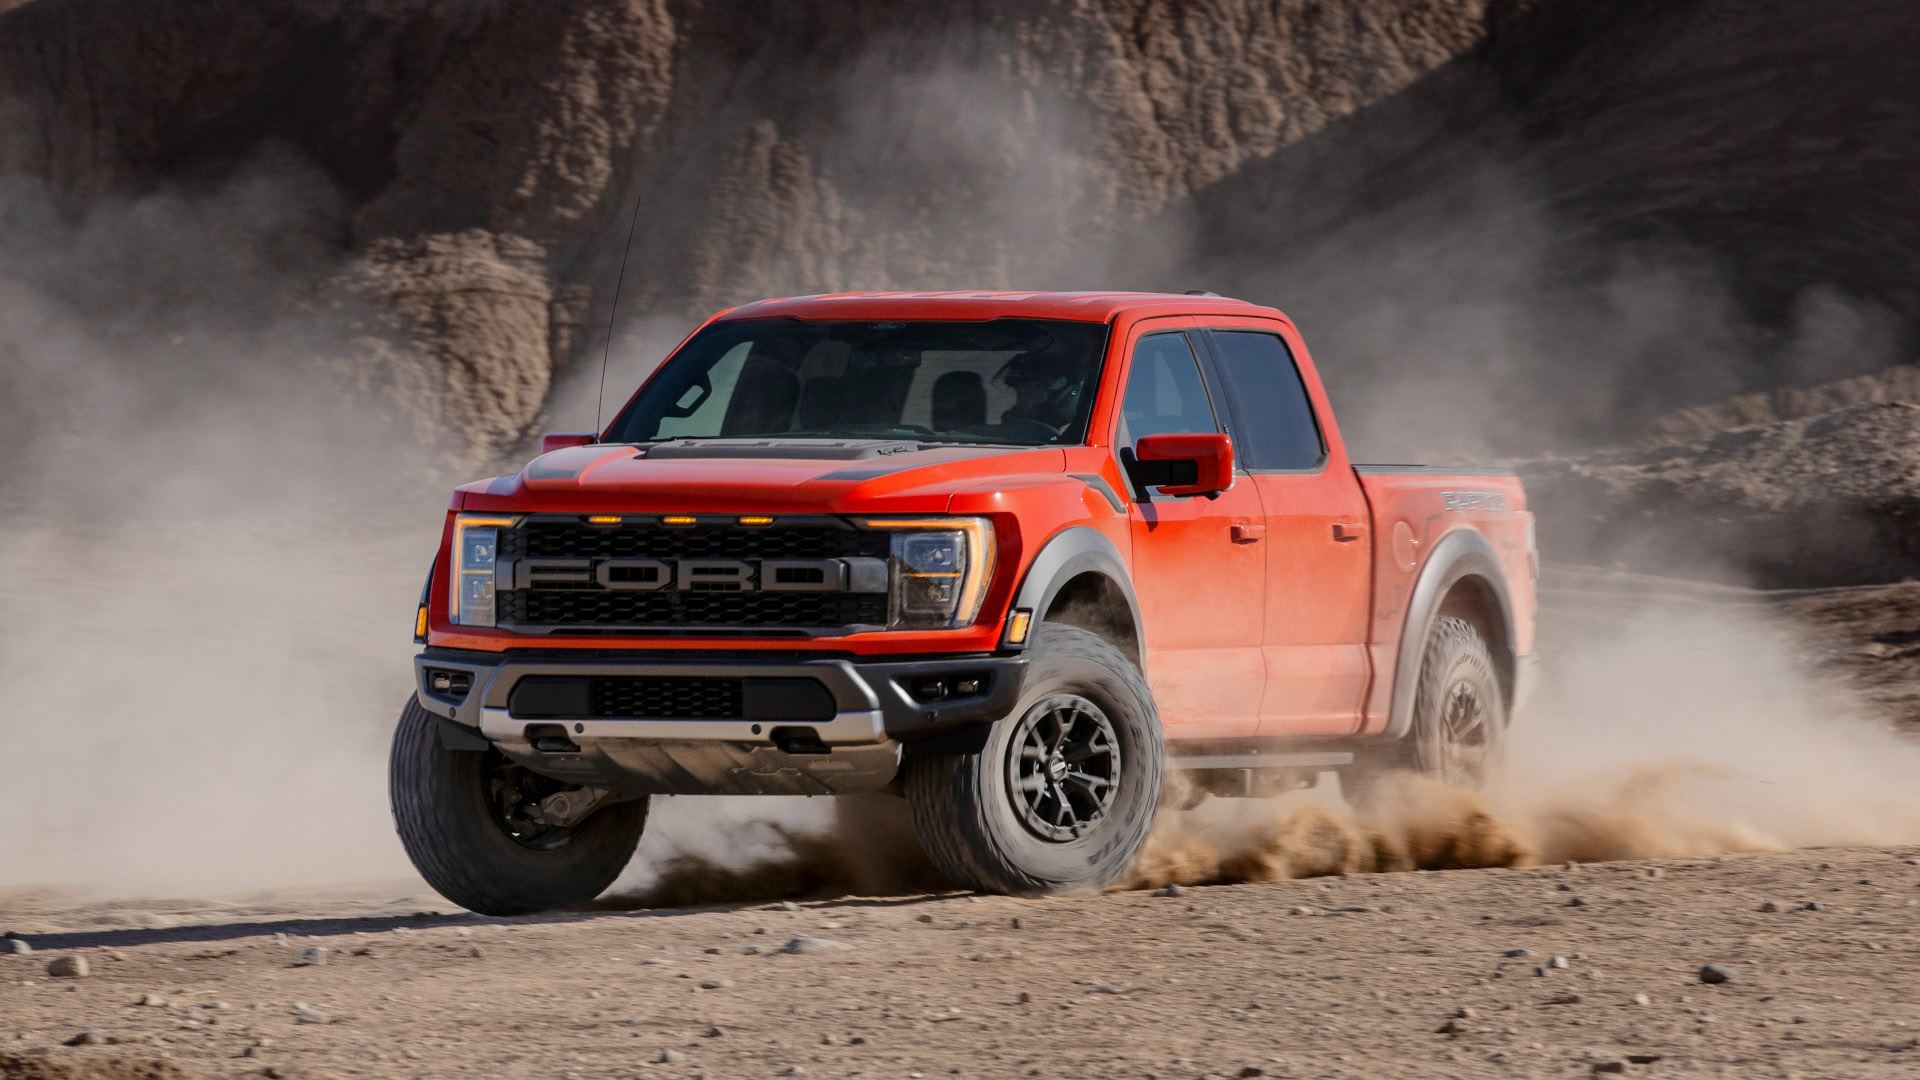 Ford's F-150 Raptor driven on dirt